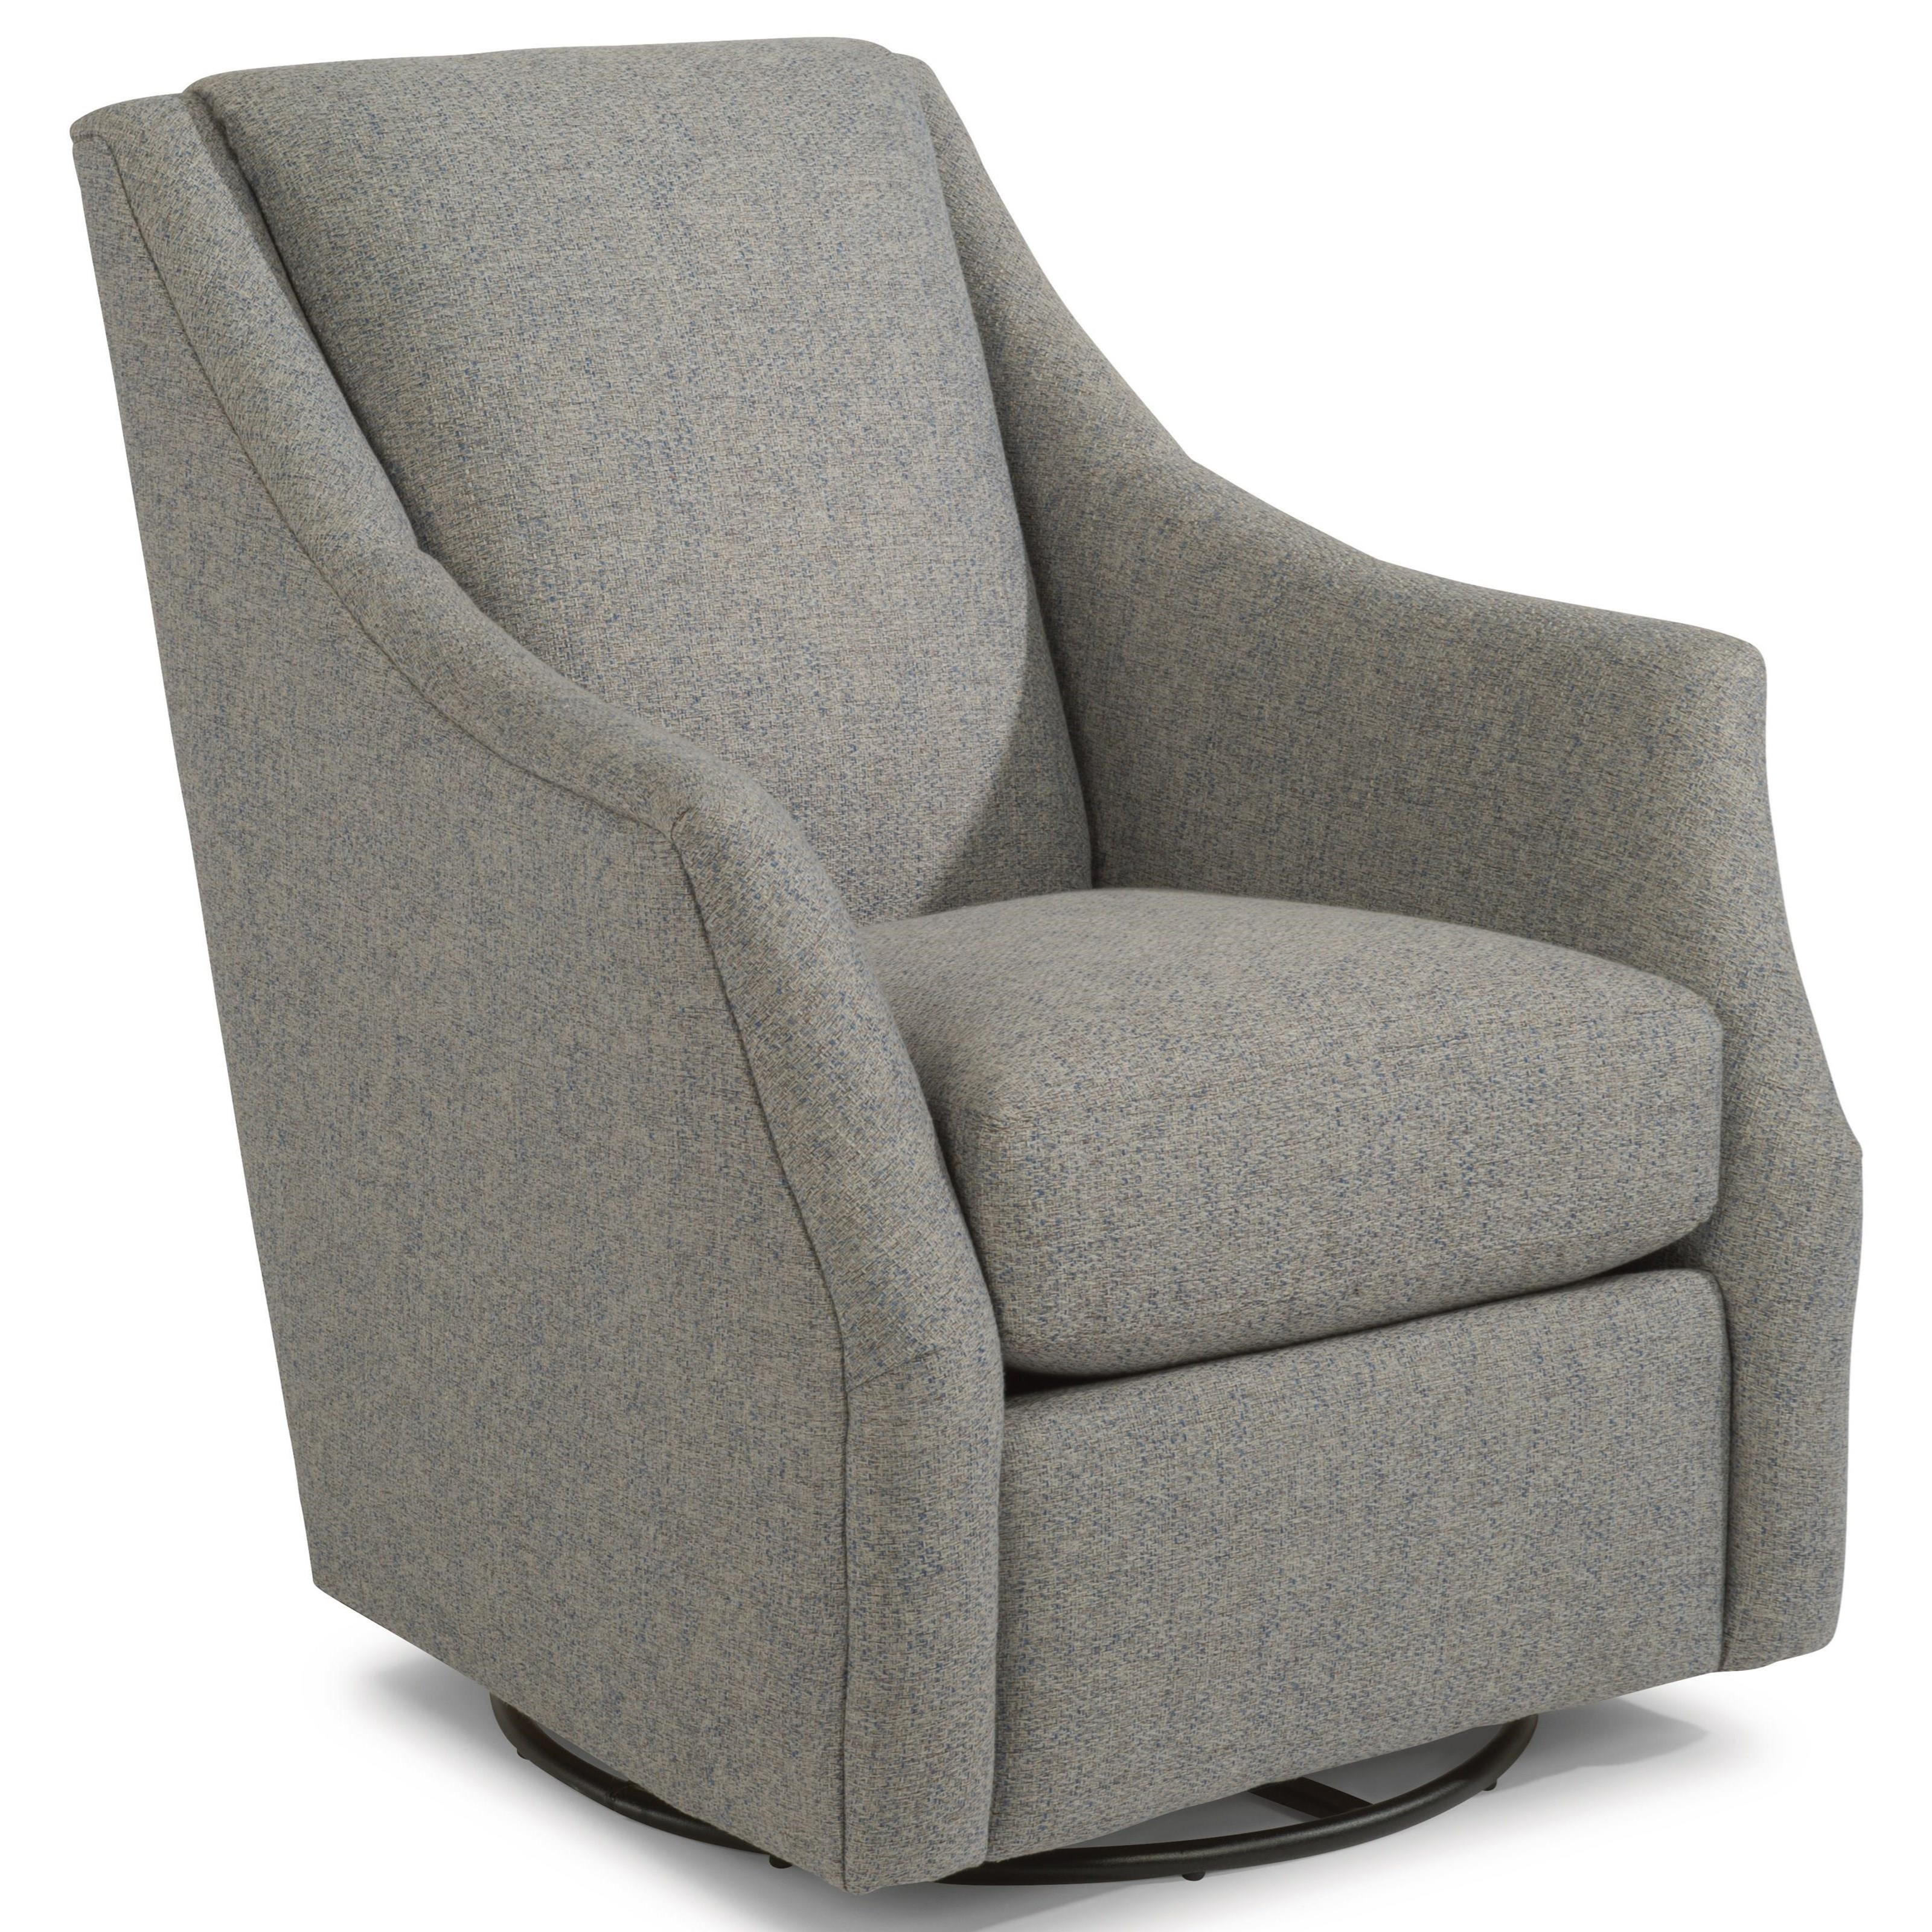 Plymouth Swivel Chair by Flexsteel at HomeWorld Furniture